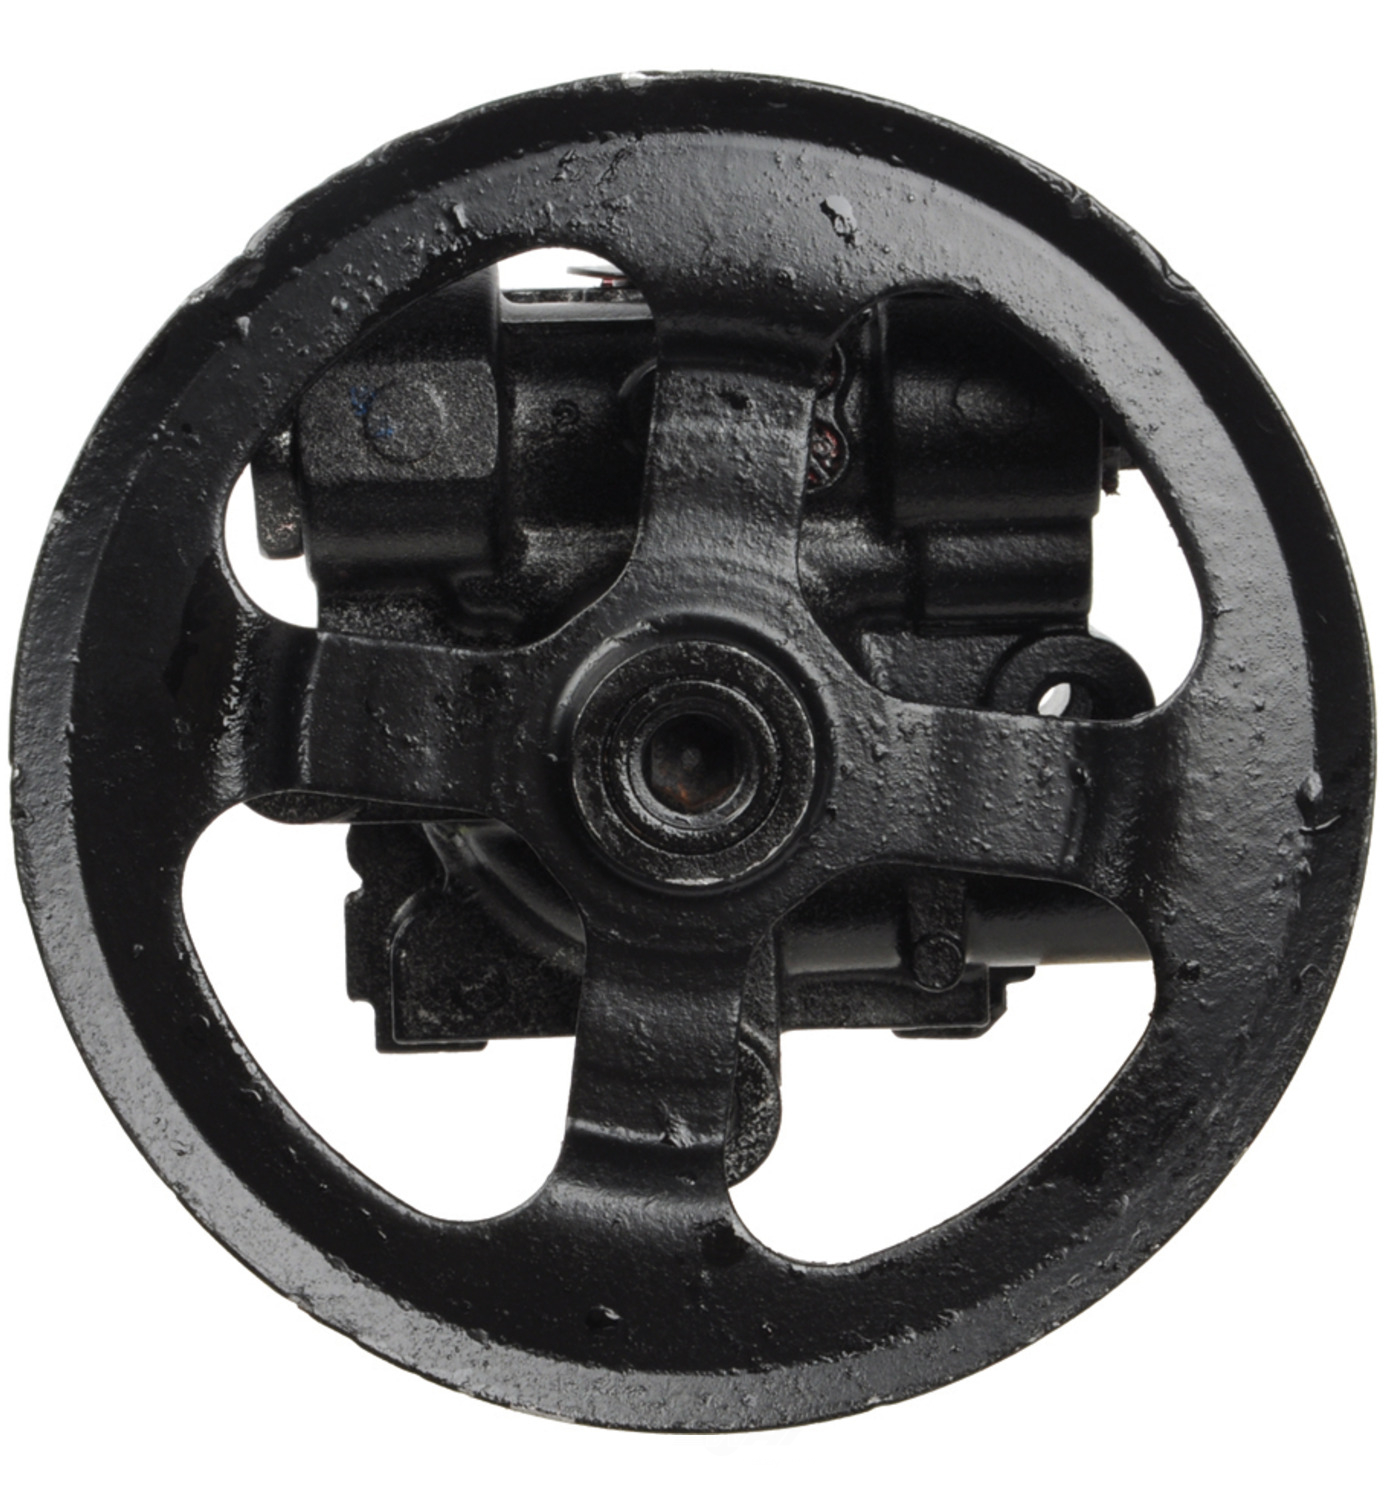 A1 CARDONE 20-2401 - Power Steering Pump - Reman - 202401